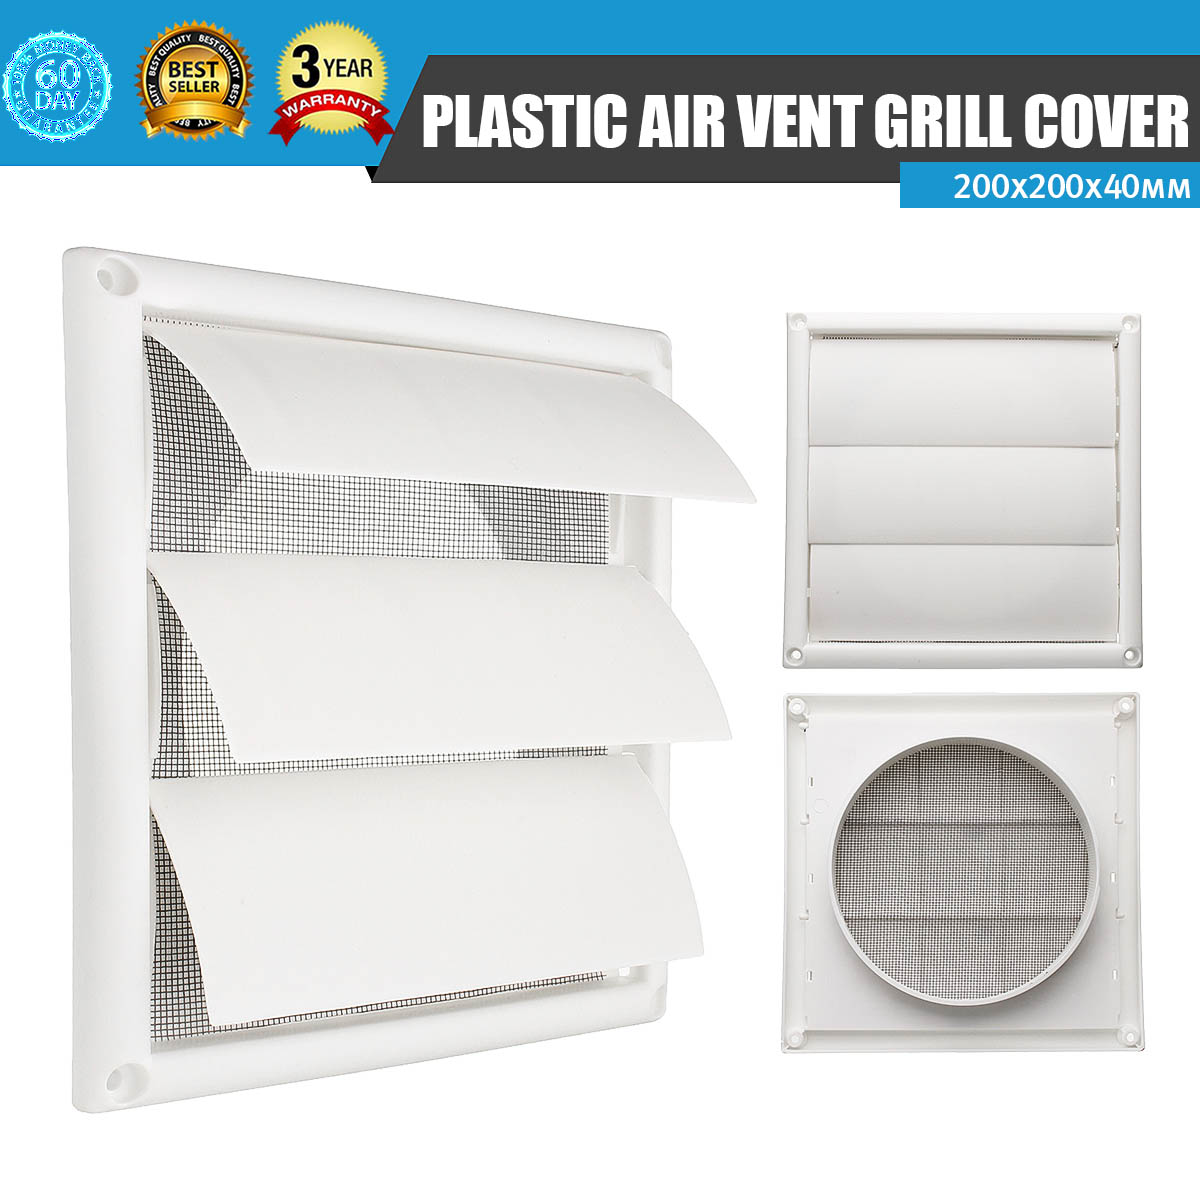 US $6 55 21% OFF|MTGATHER Air Vent Grille Ventilation Cover Plastic White  Wall Grilles Duct 200x200x40mm Heating Cooling & Vents Vents-in Vents from